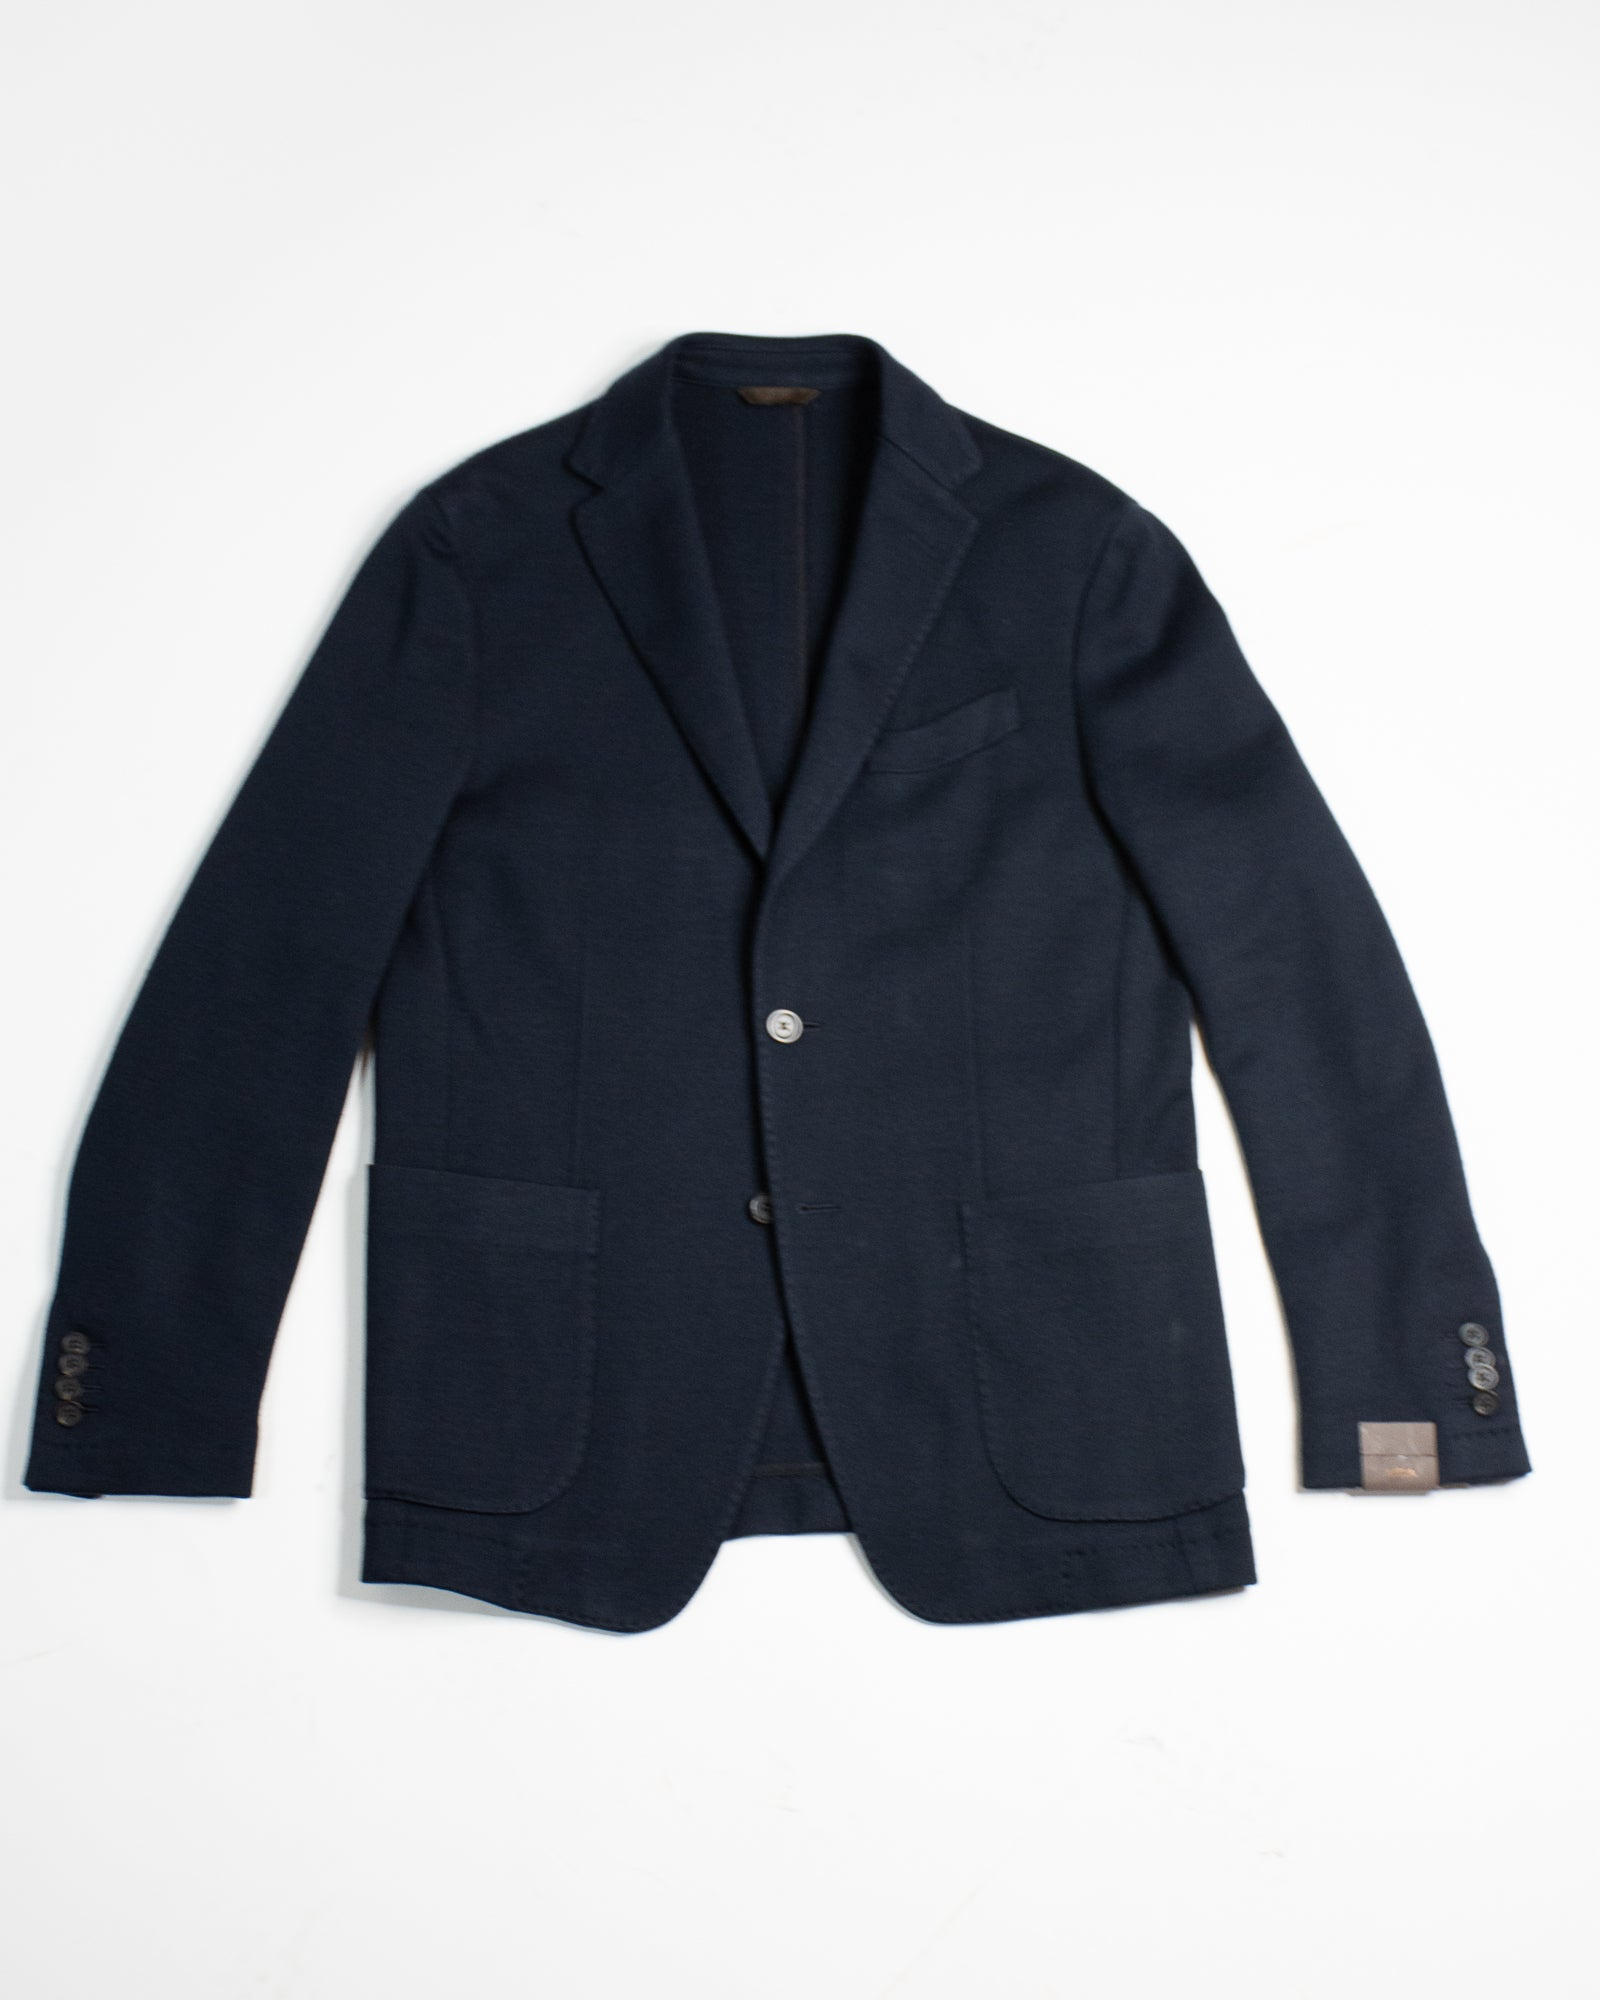 ALTEA Jersey Single Breasted Sports Jacket